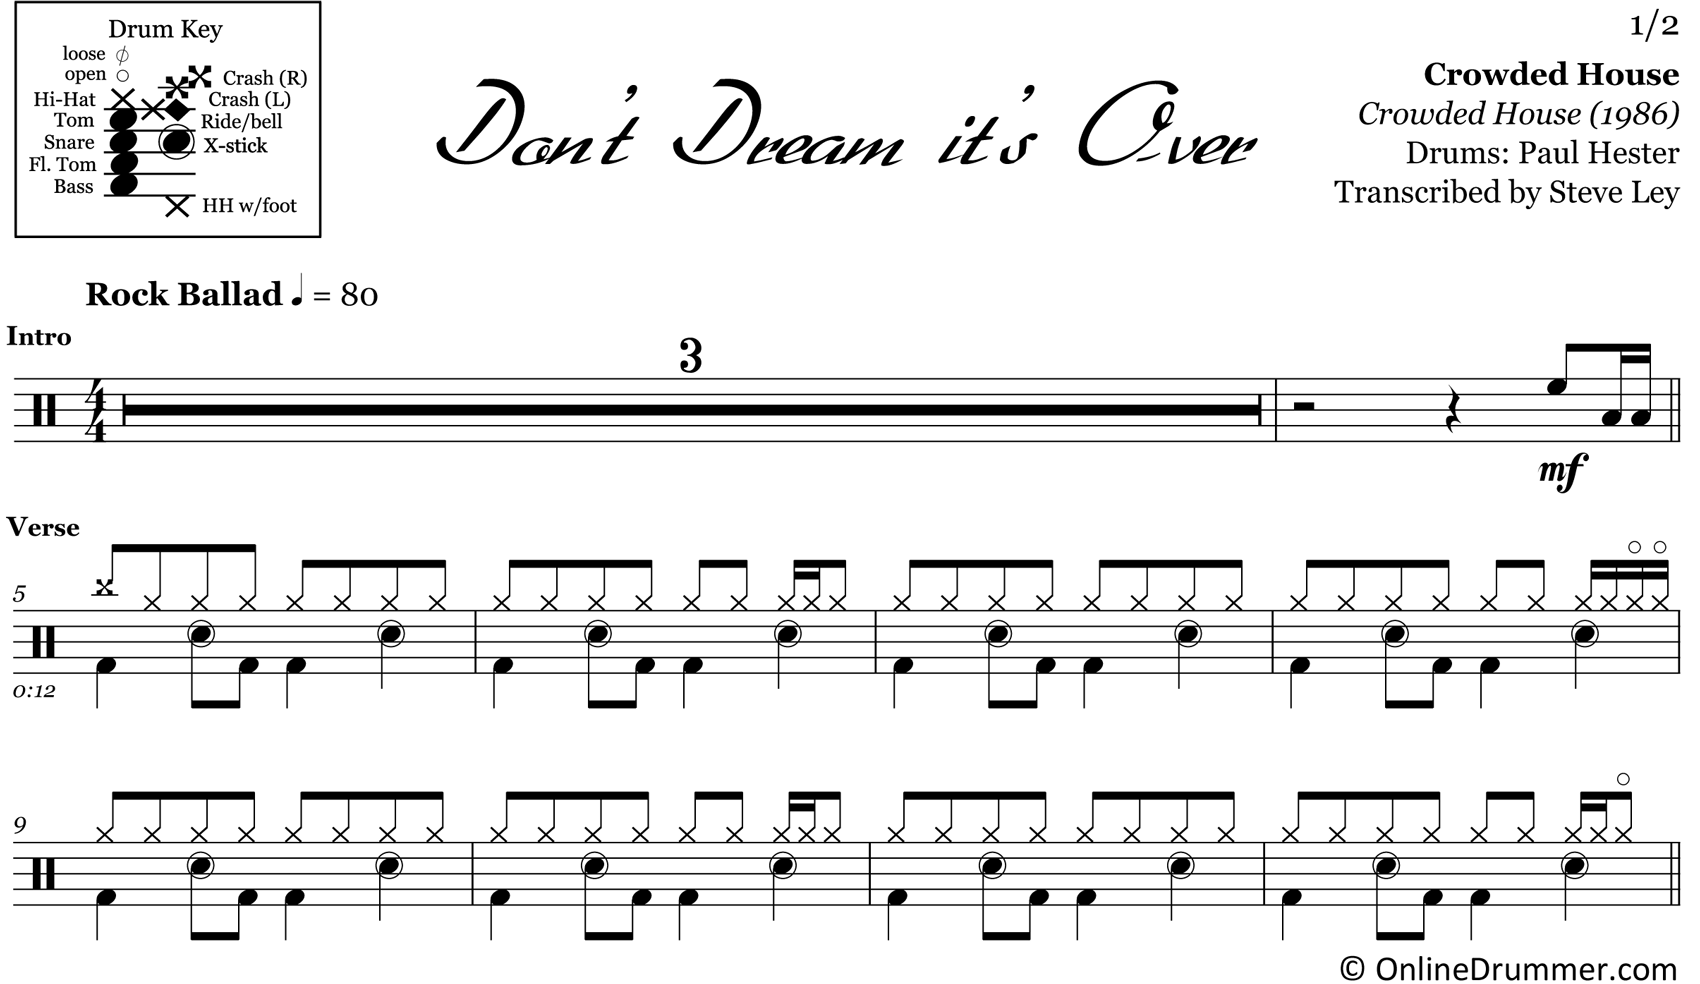 Don't Dream It's Over - Crowded House - Drum Sheet Music